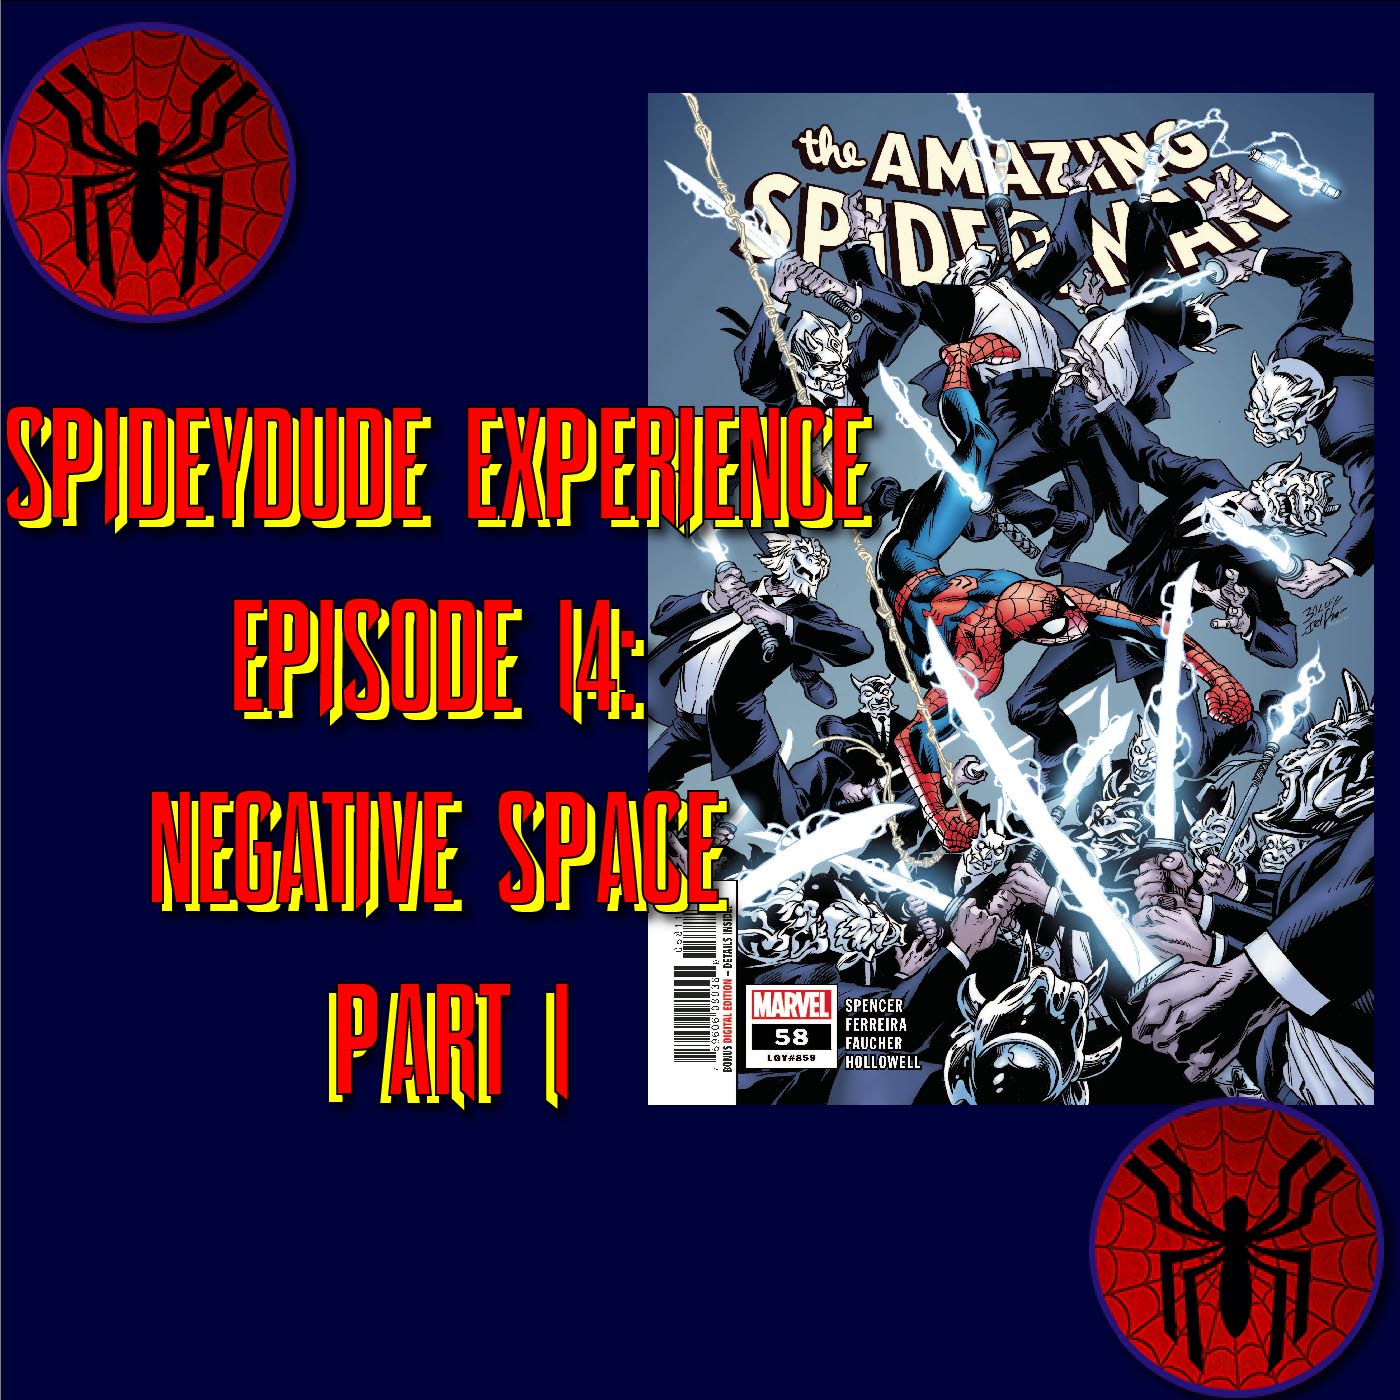 """Spidey-Dude Experience Episode 14: ASM 859 """"Negative Space Part 1"""""""